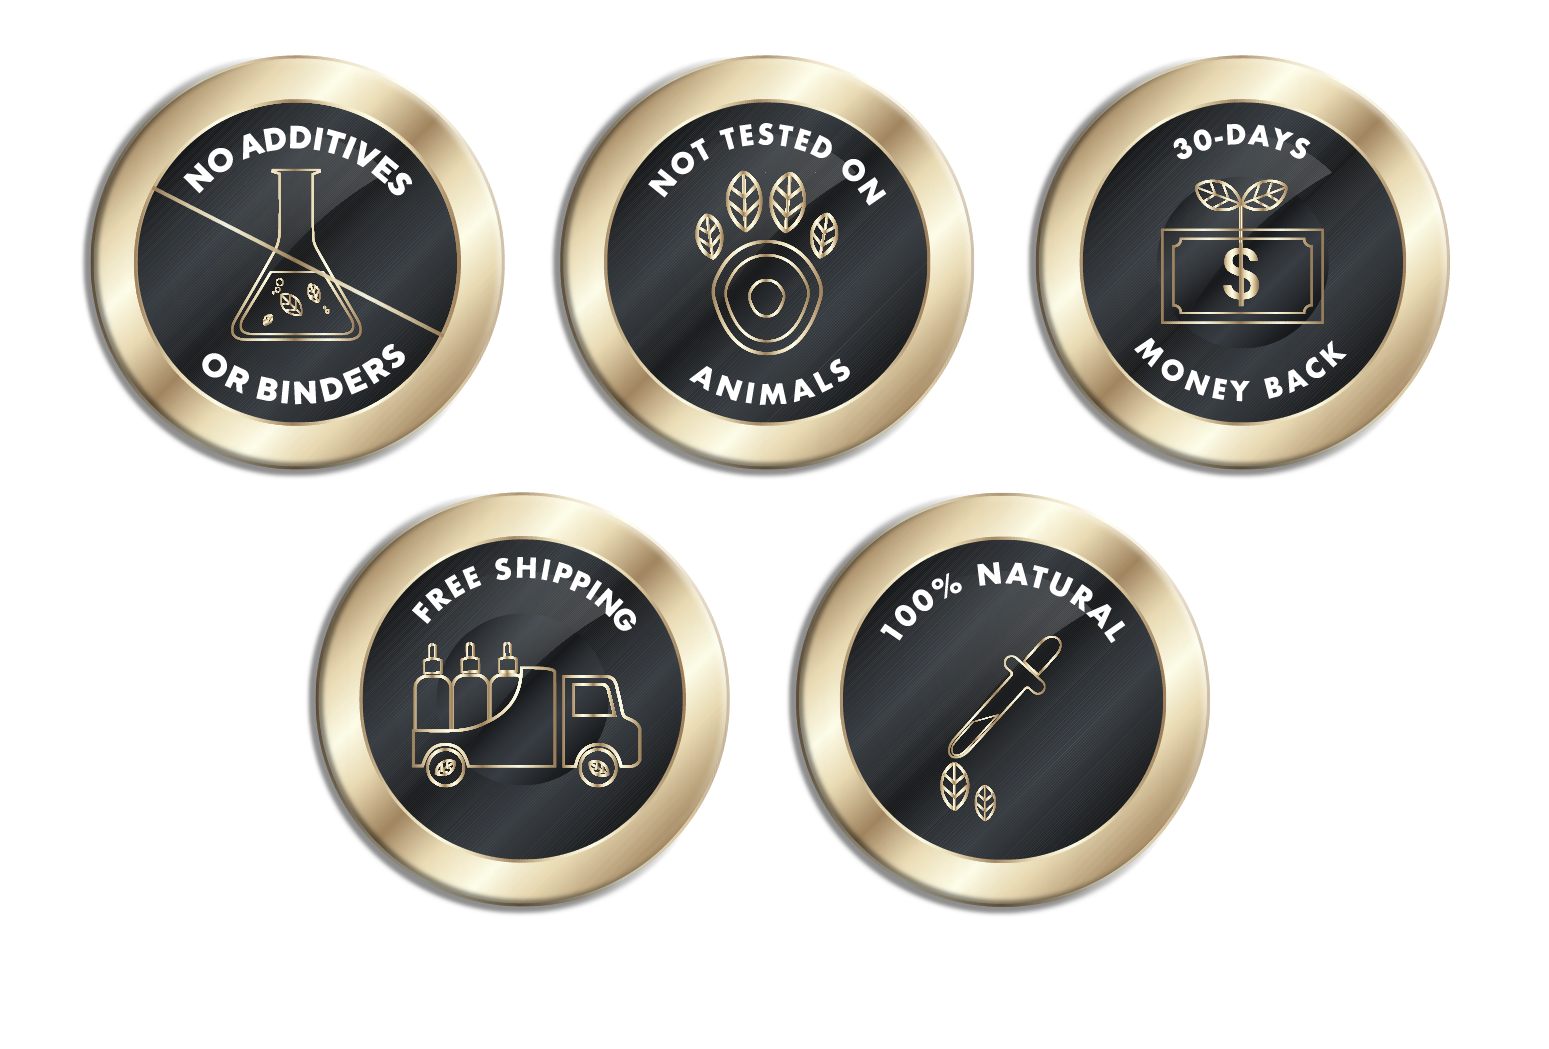 iYURA Trust Badges: 1. No Additives or Binders 2. Not Tested on Animals 3. 30-Day Money-back Guarantee 4. Free Shipping 5. 100% Natural